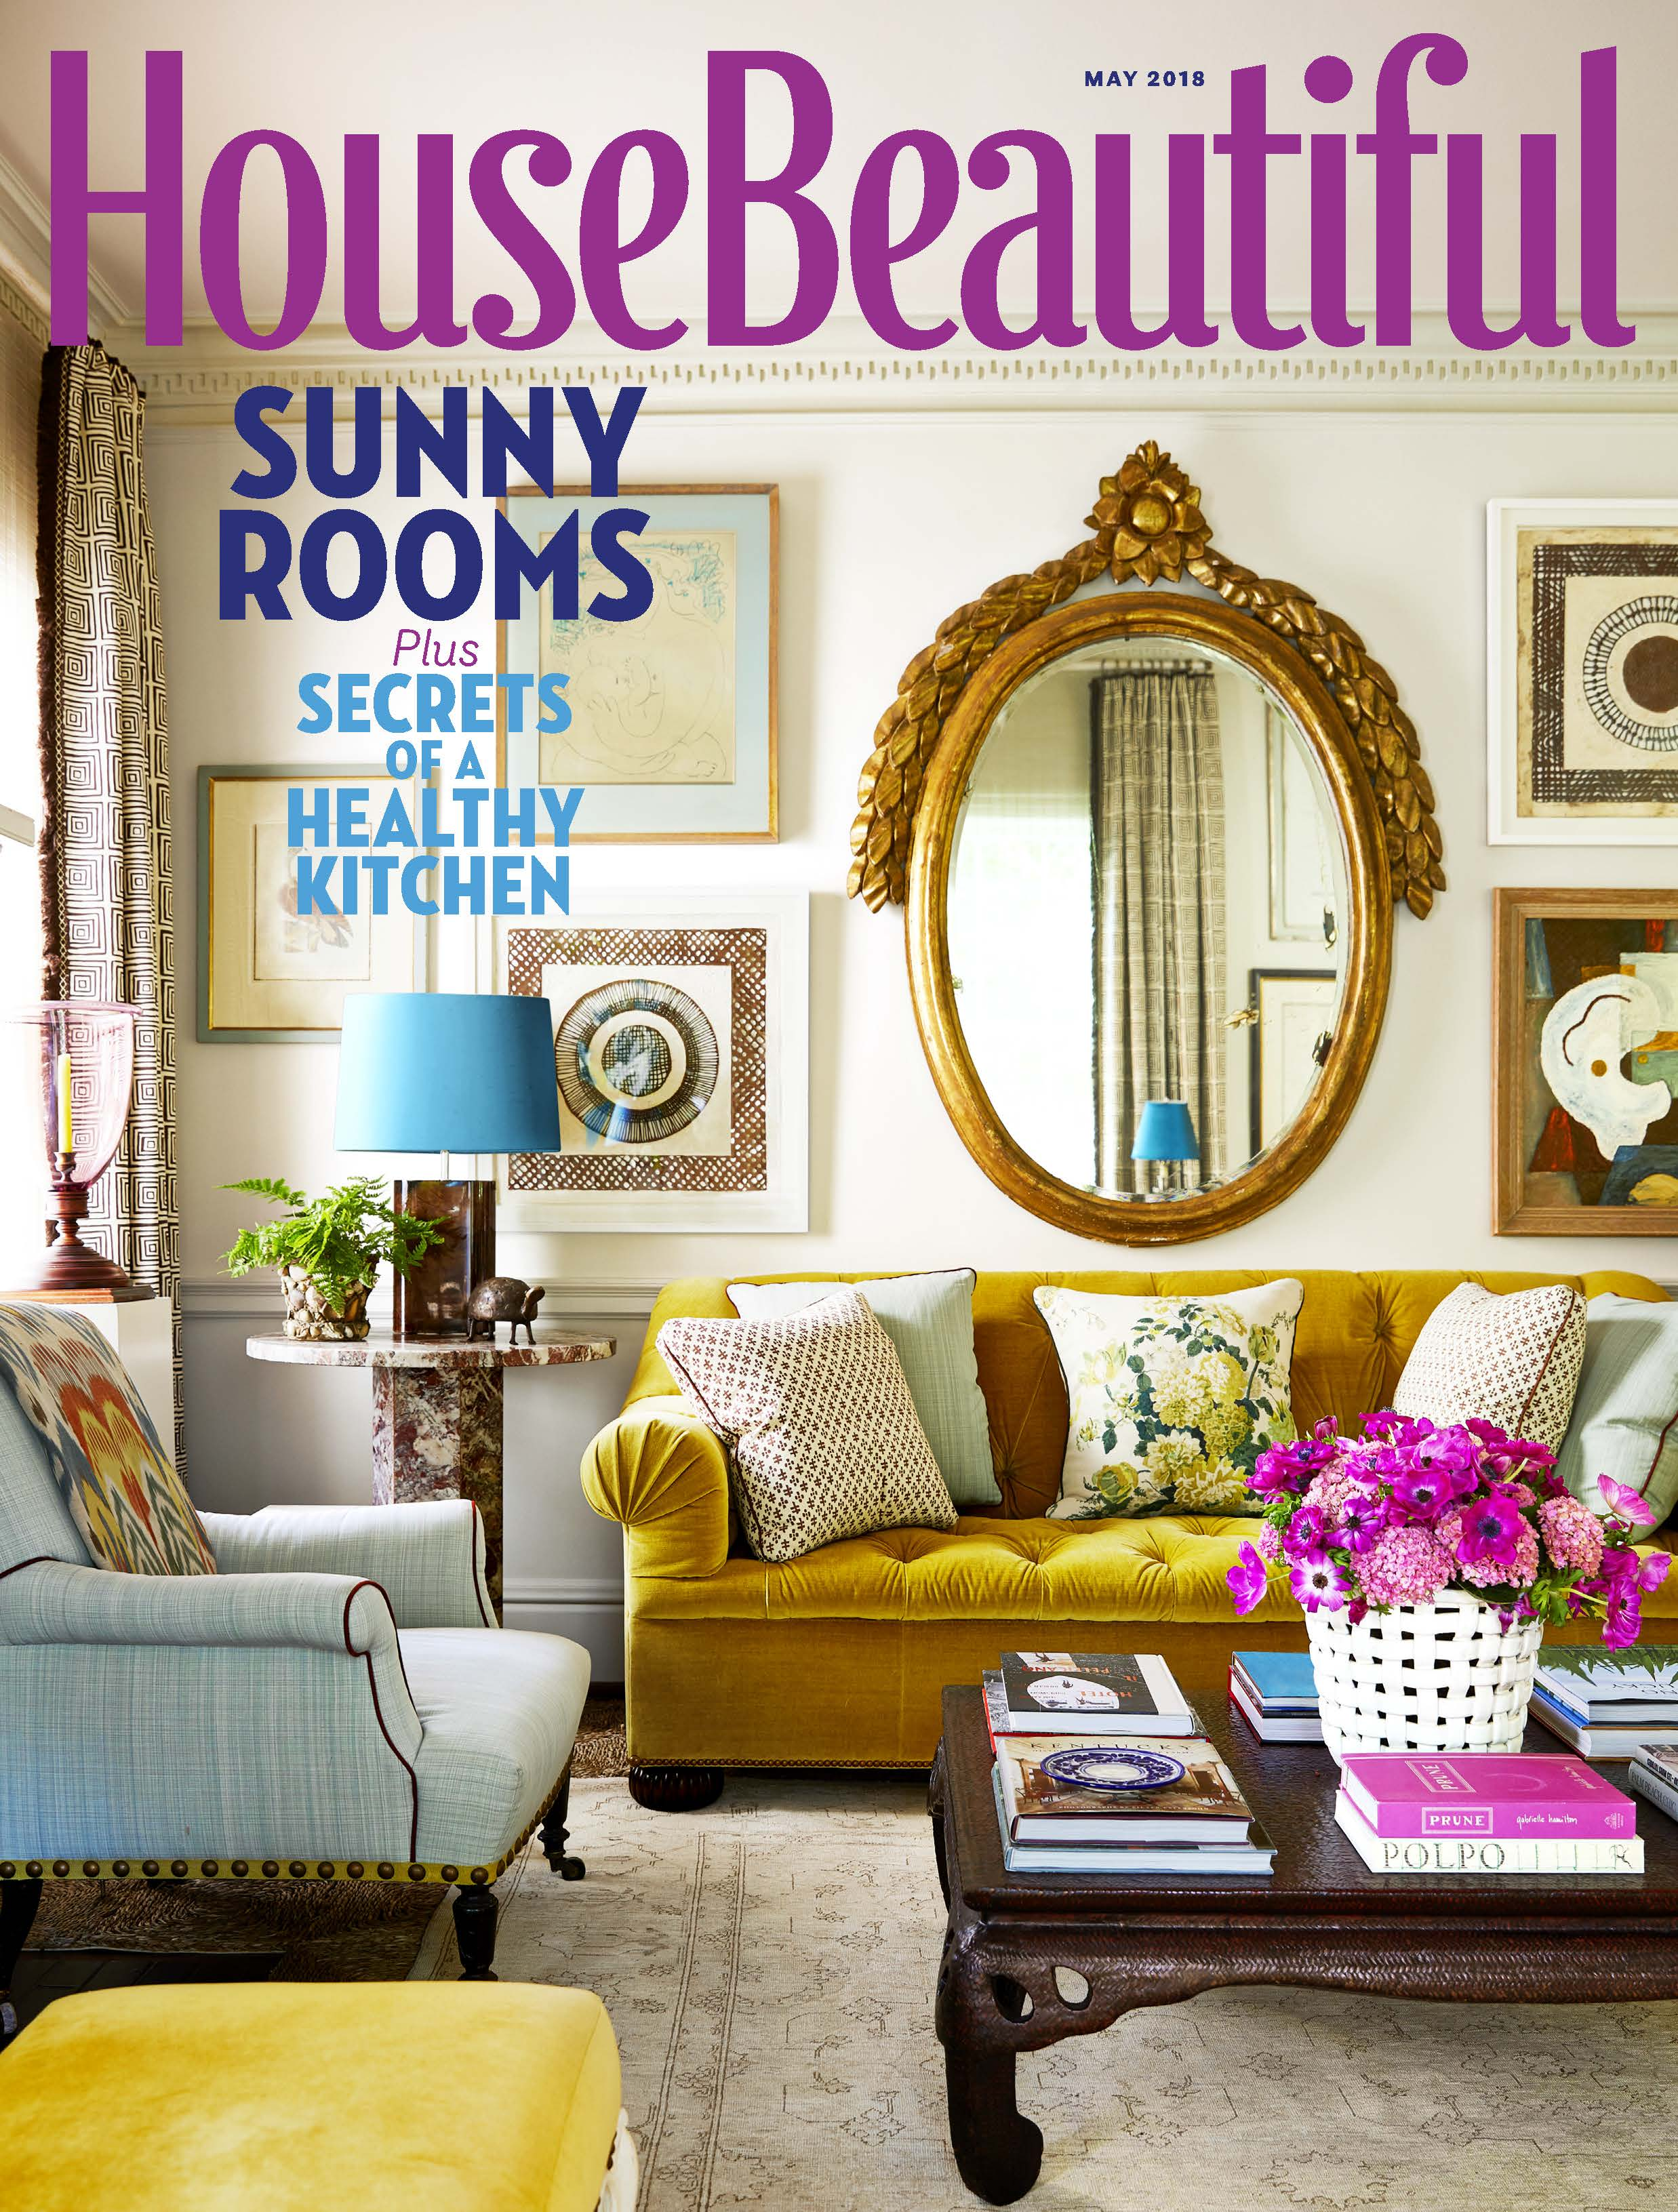 Attrayant House Beautiful Magazine: Bringing The Concept Of Wellness And Better  Living Through Design To Its Printed Pages U0026 Its Multiplatform Audiences U2013  The Mr. ...